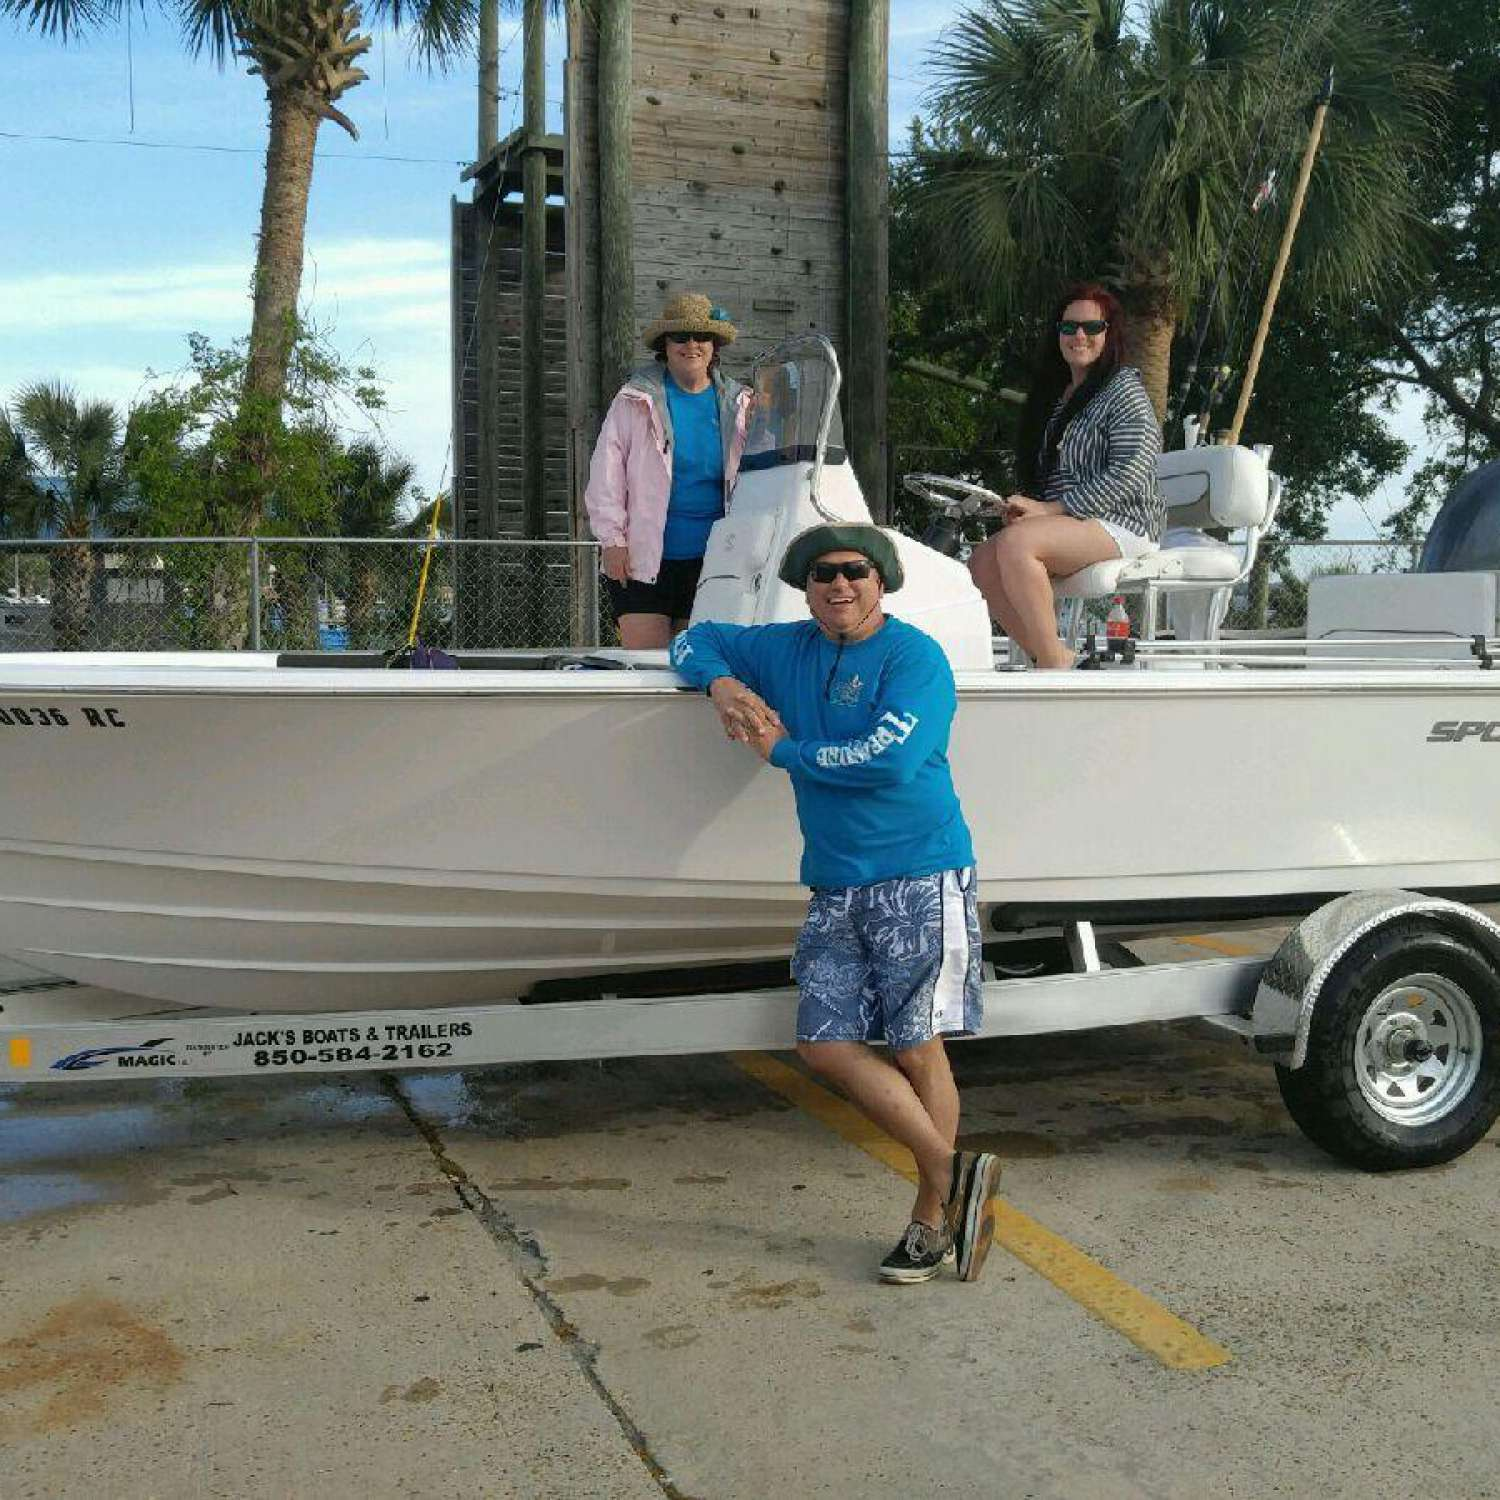 Title: Second Voyage - On board their Sportsman Masters 207 Bay Boat - Location: Lamont, Florida. Participating in the Photo Contest #SportsmanApril2016